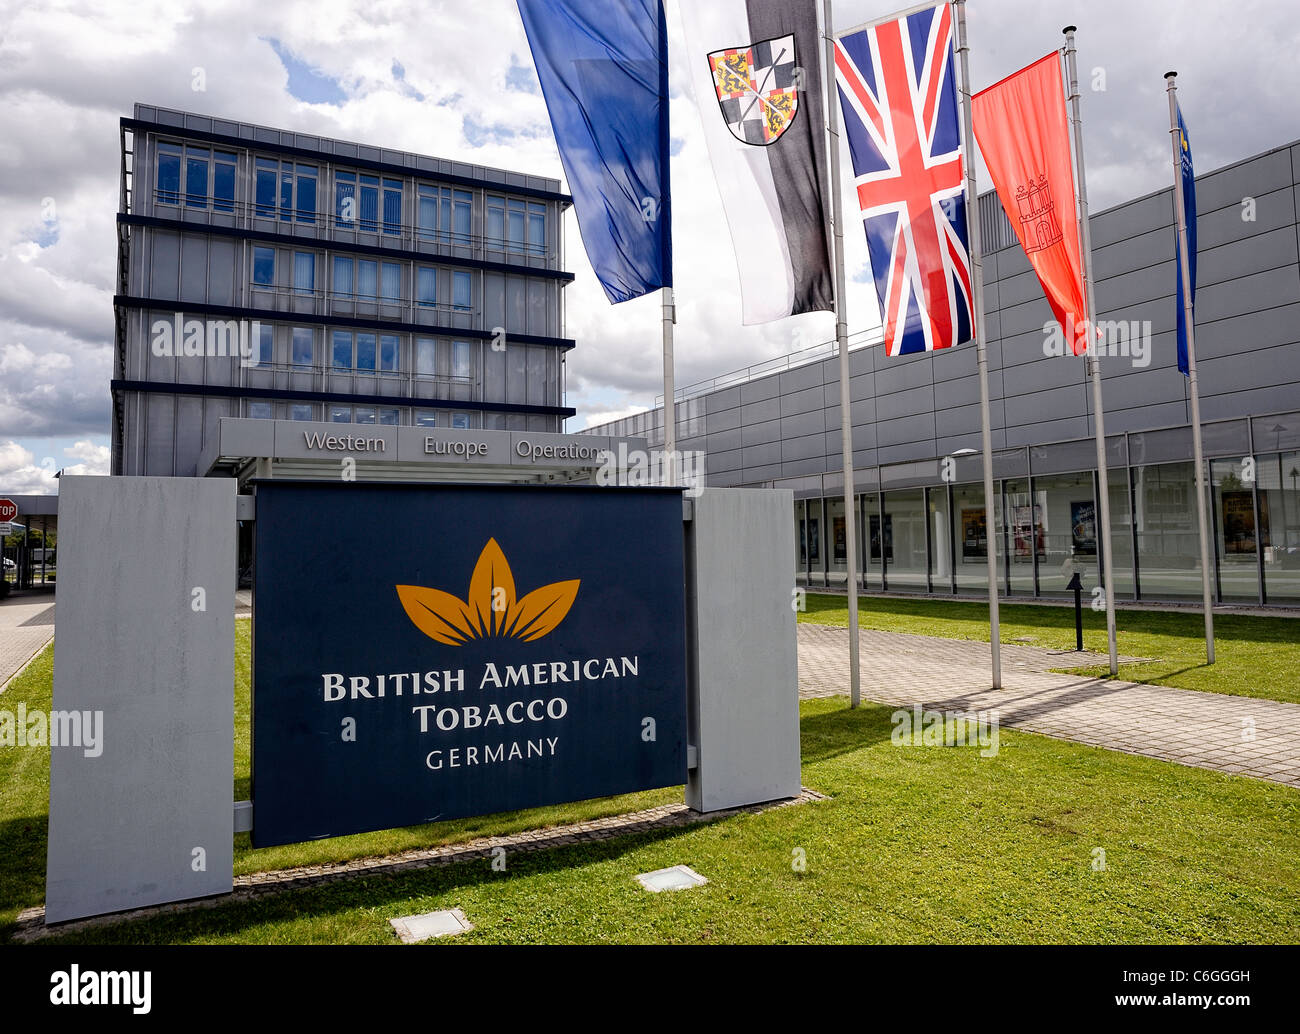 british american tobacco malaysia Learn about working at british american tobacco singapore join linkedin today for free see who you know at british american tobacco singapore, leverage.